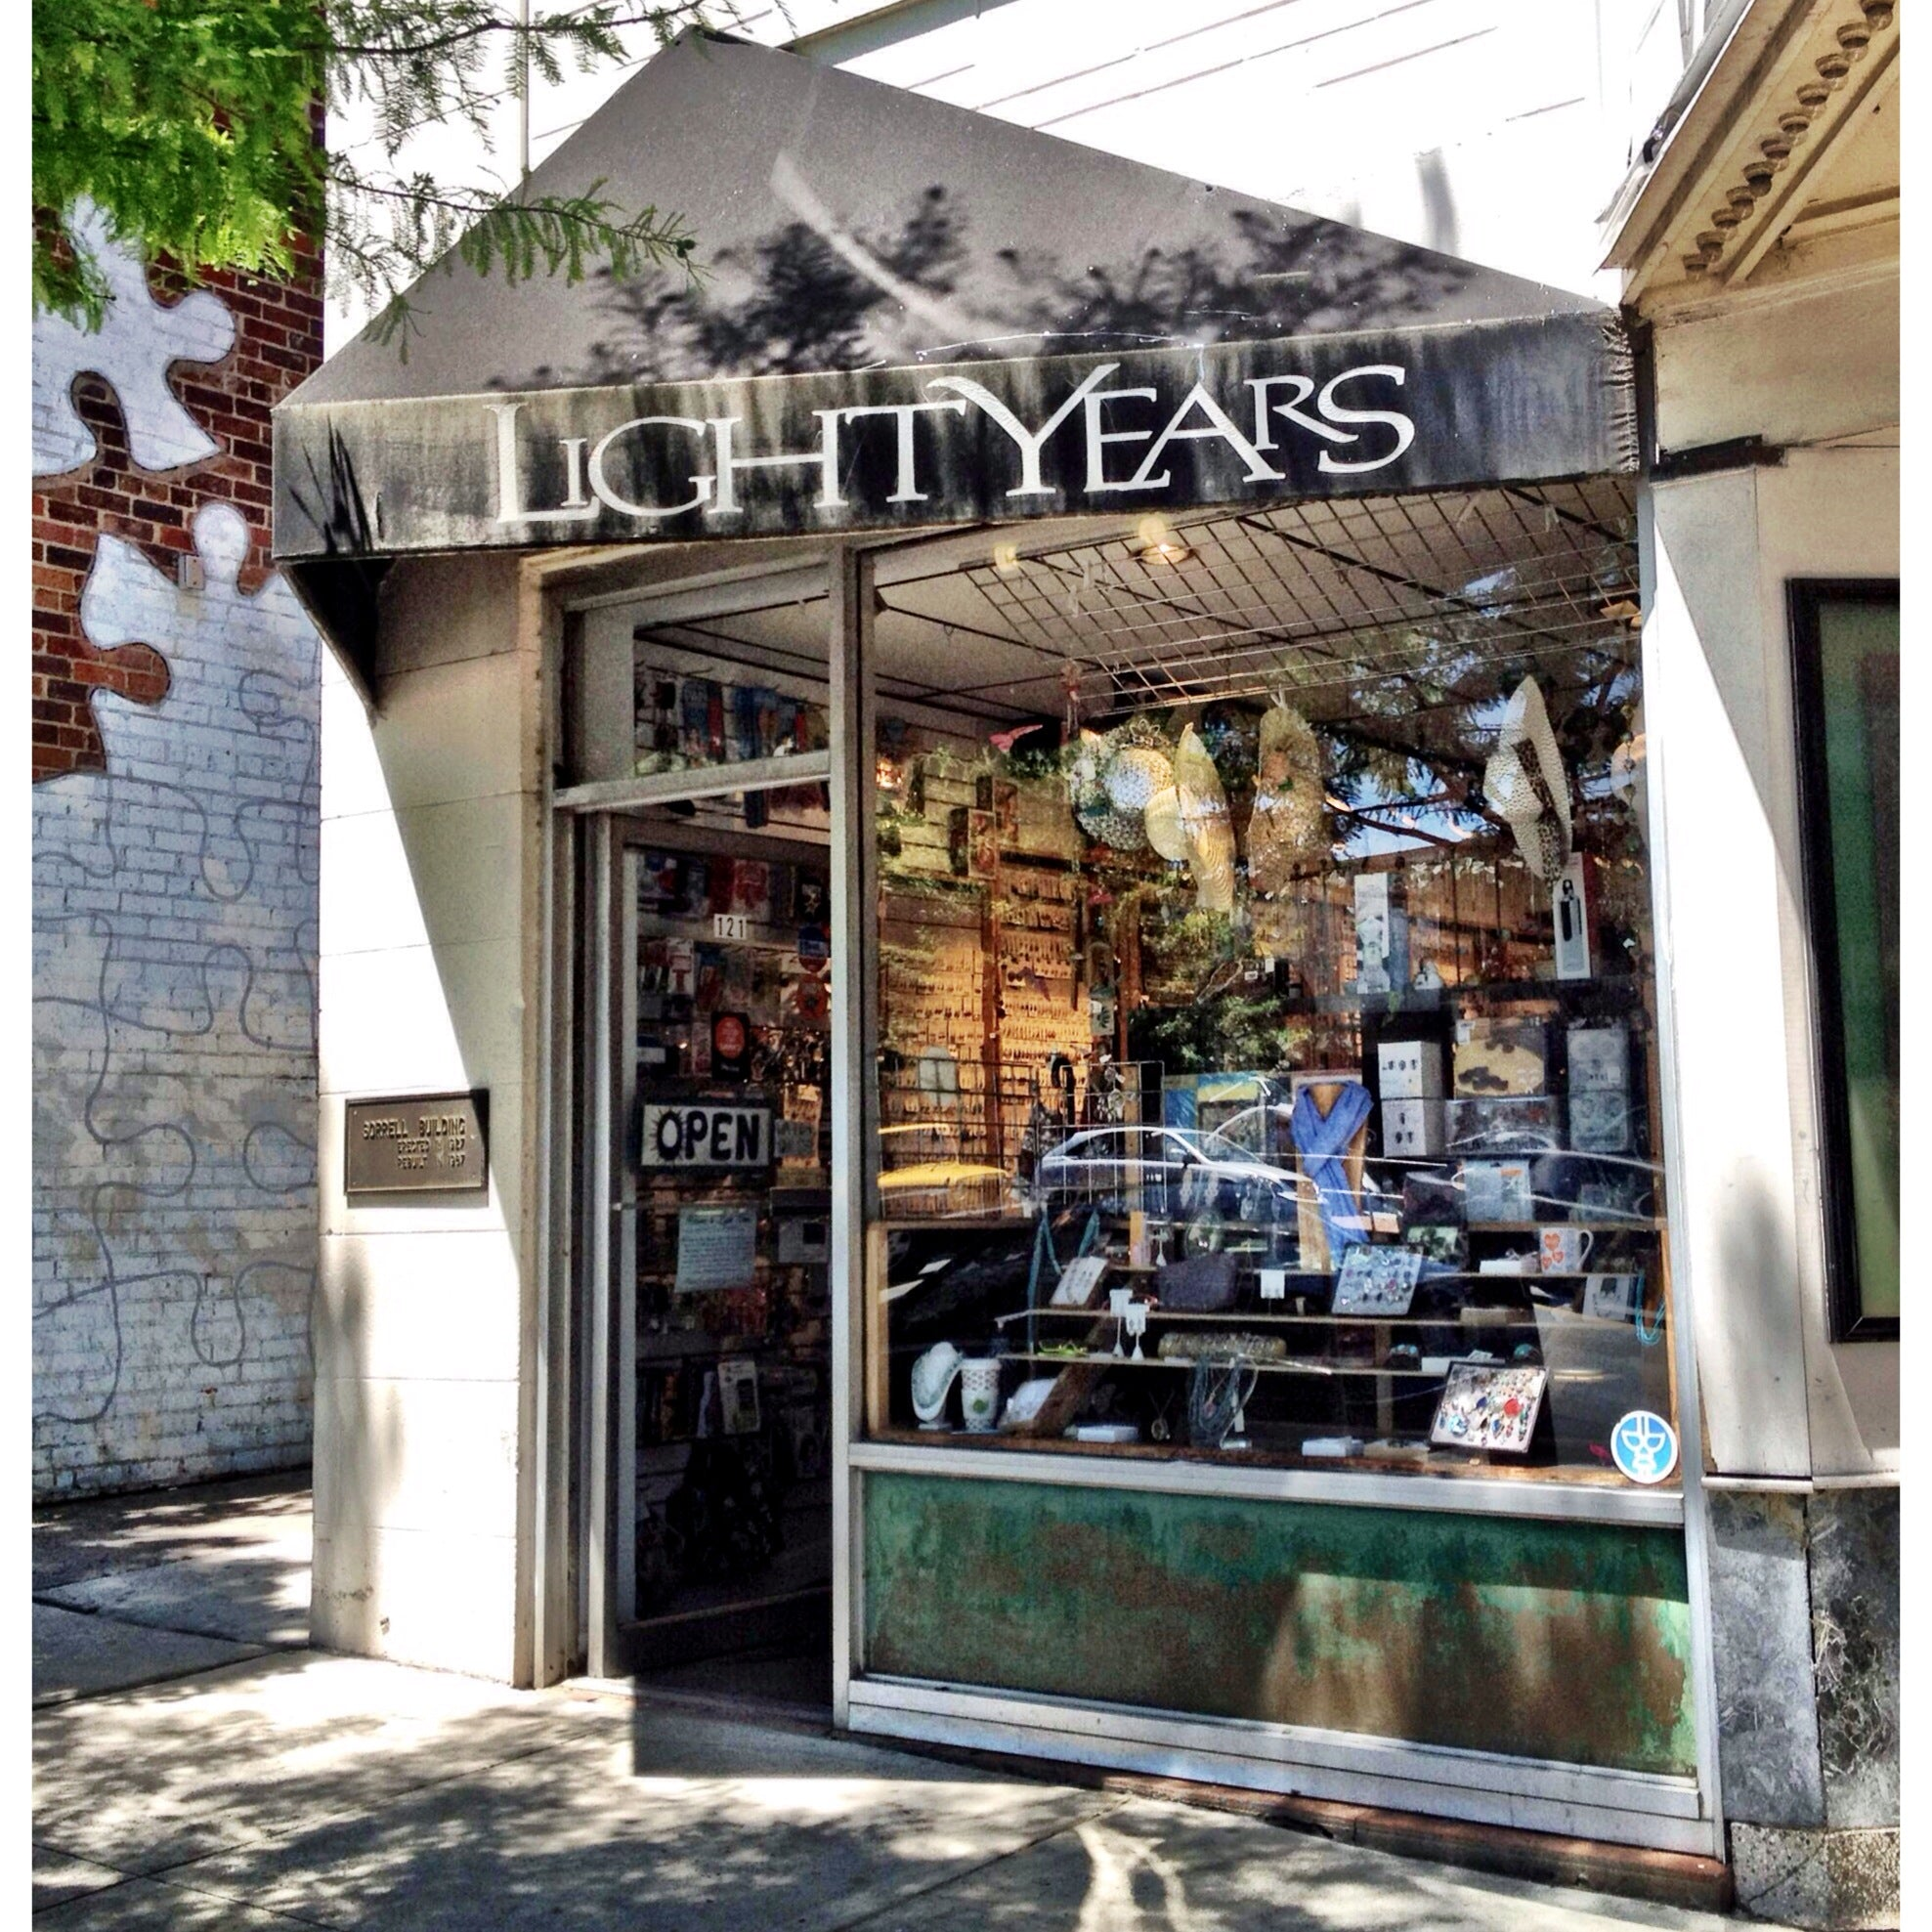 Image of the Light Years Jewelry store in Chapel Hill